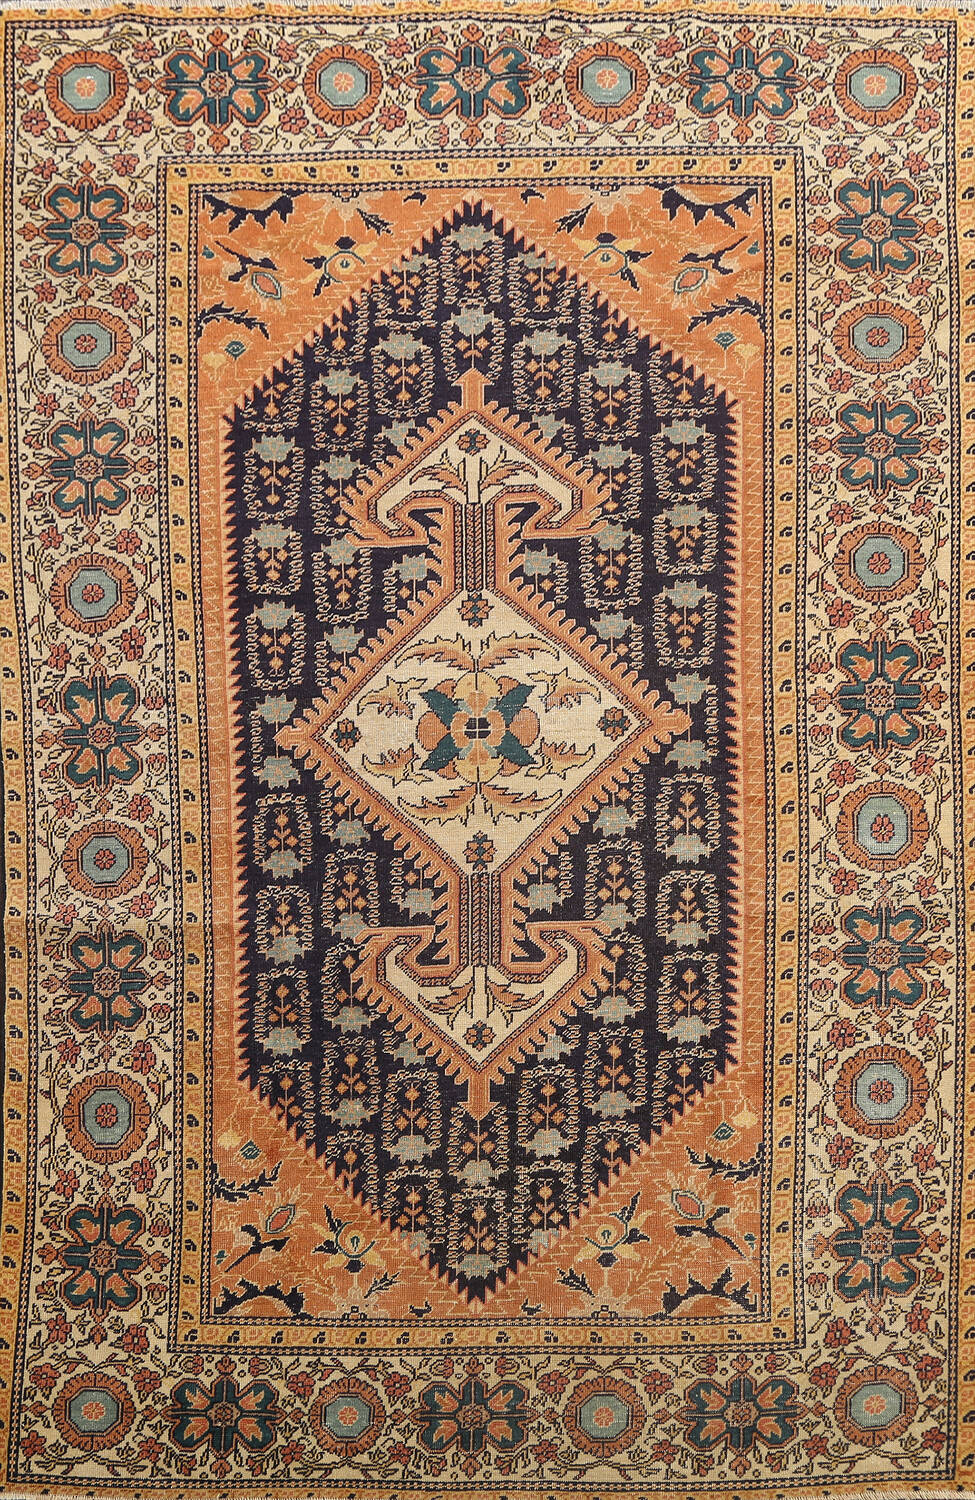 Antique 100% Vegetable Dye Sultanabad Persian Area Rug 4x5 image 1